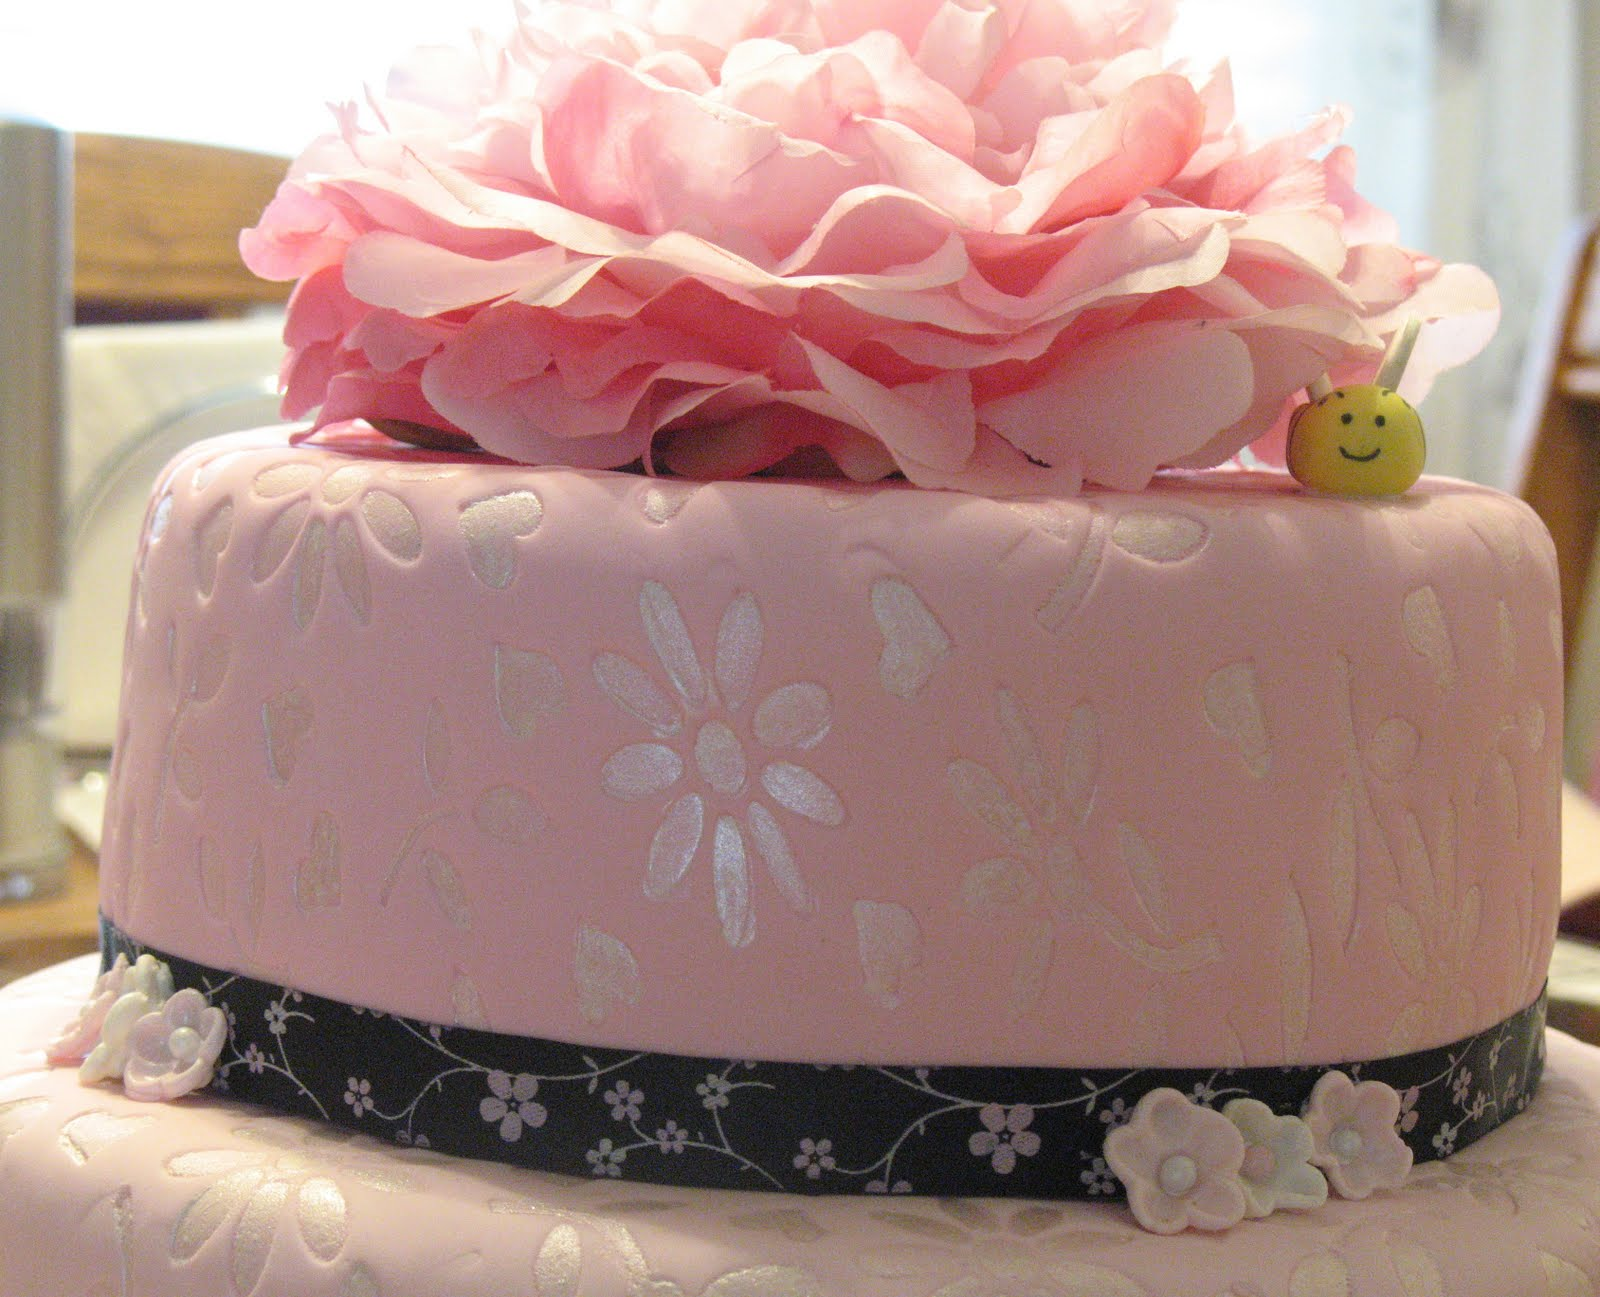 Js cakes designer flowers cake flowers cake made for a birthday party for a designer strawberry cake on top tier strawberry nectar cake on bottom both filled with strawberry whipped izmirmasajfo